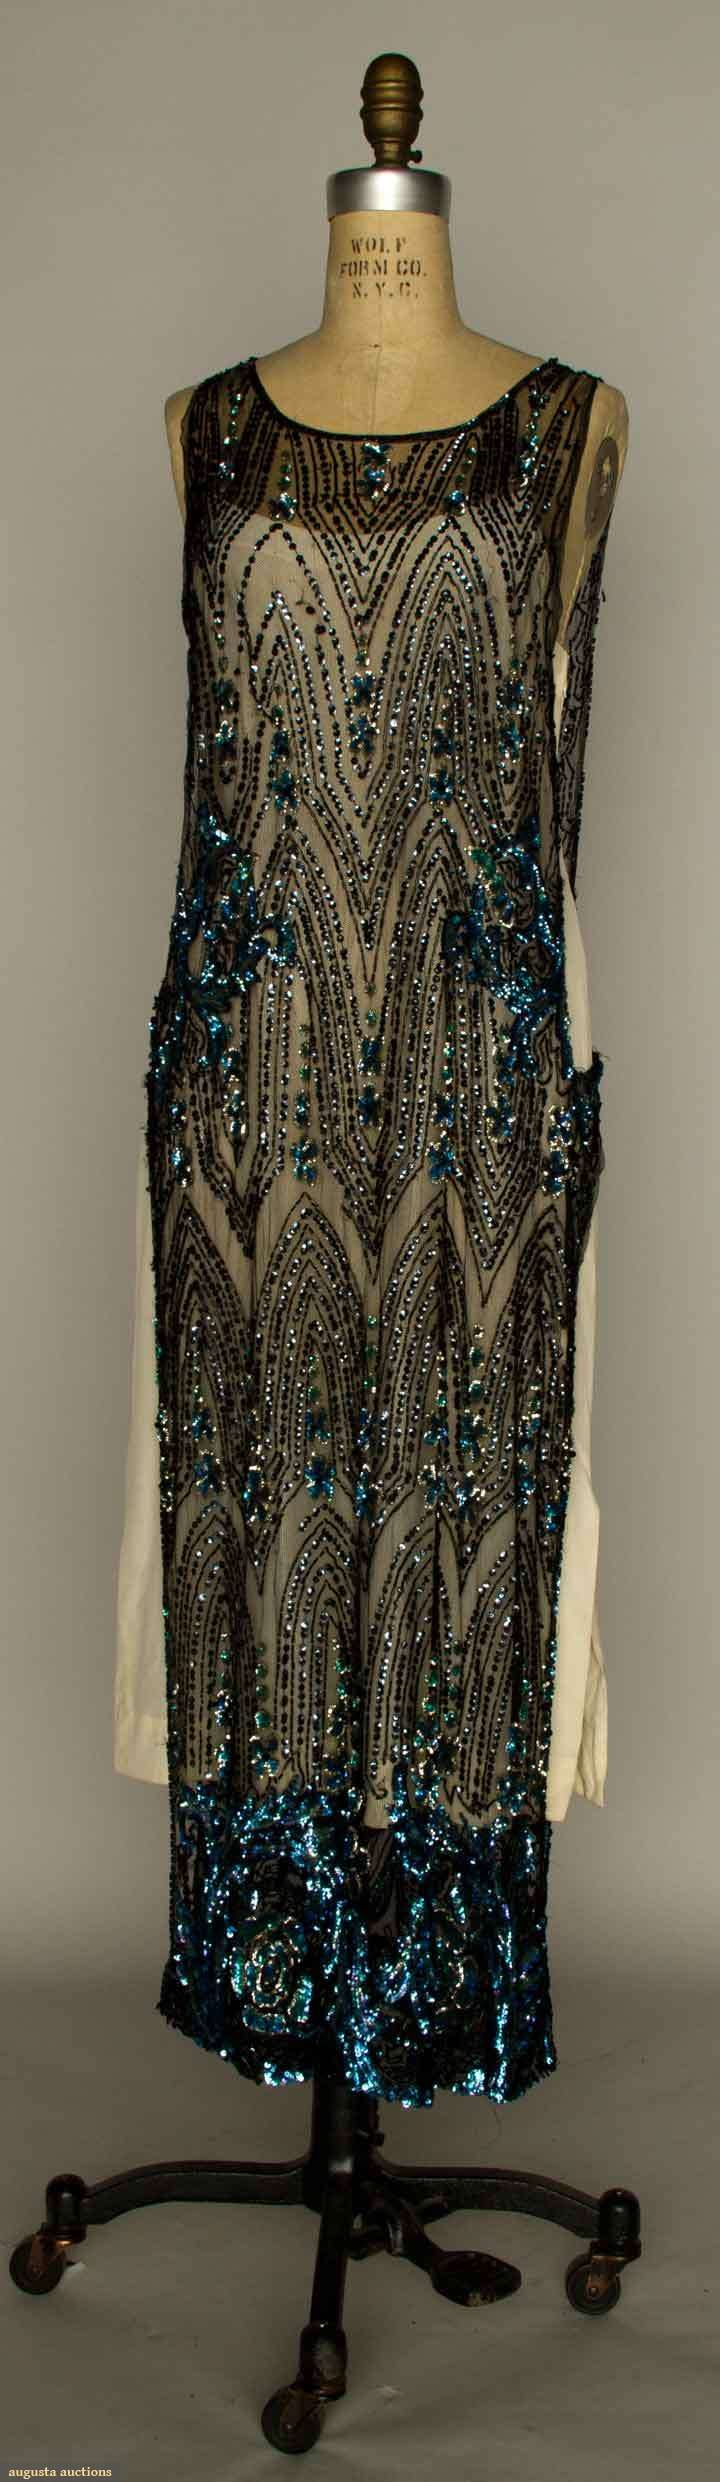 SEQUIN TABARD DRESS, EARLY 1920s Black net embroidered w/ blue & black sequins & black bugle beads. Front